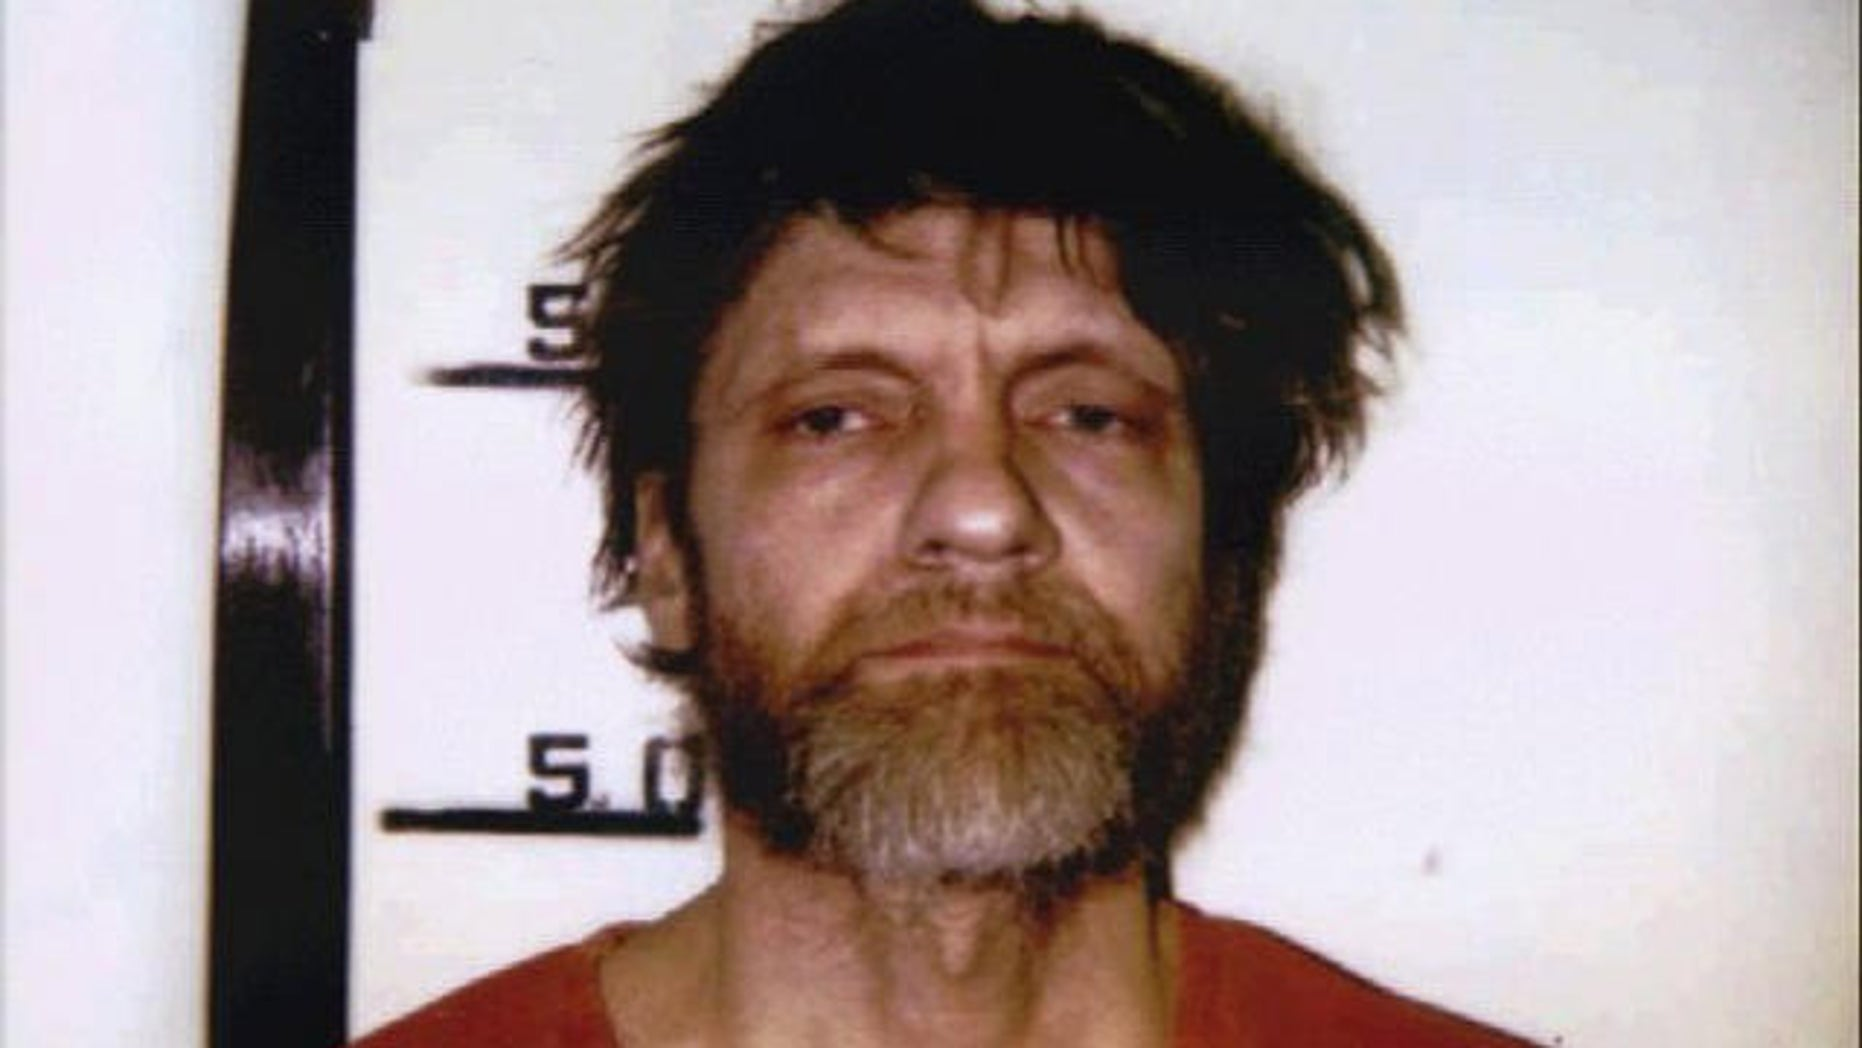 Unabomber Ted Kaczynski is serving a life sentence after pleading guilty in 1998 to setting 16 explosions that killed three people (AP).